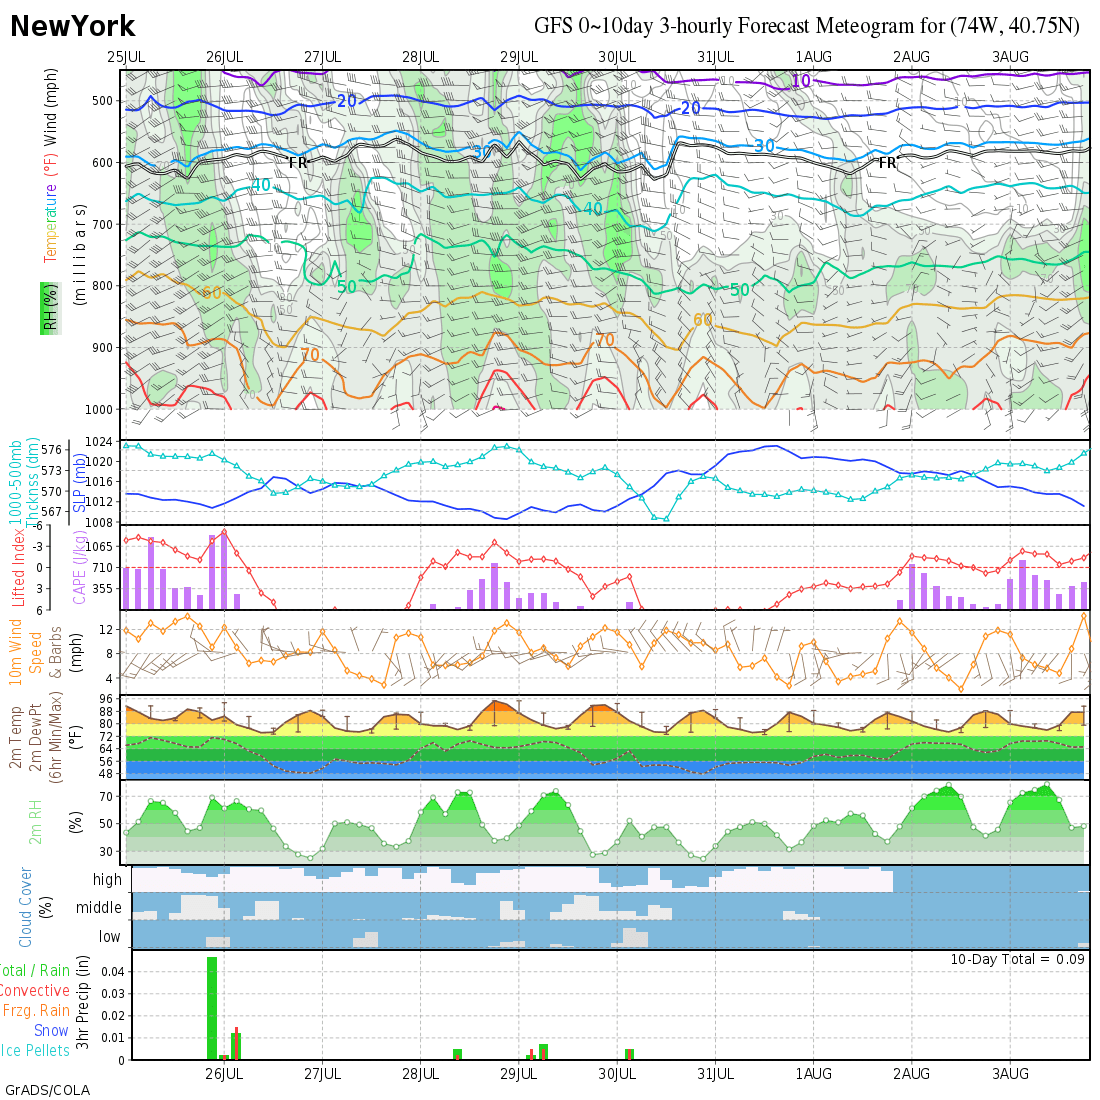 GFS Meteograms, Day 0-8